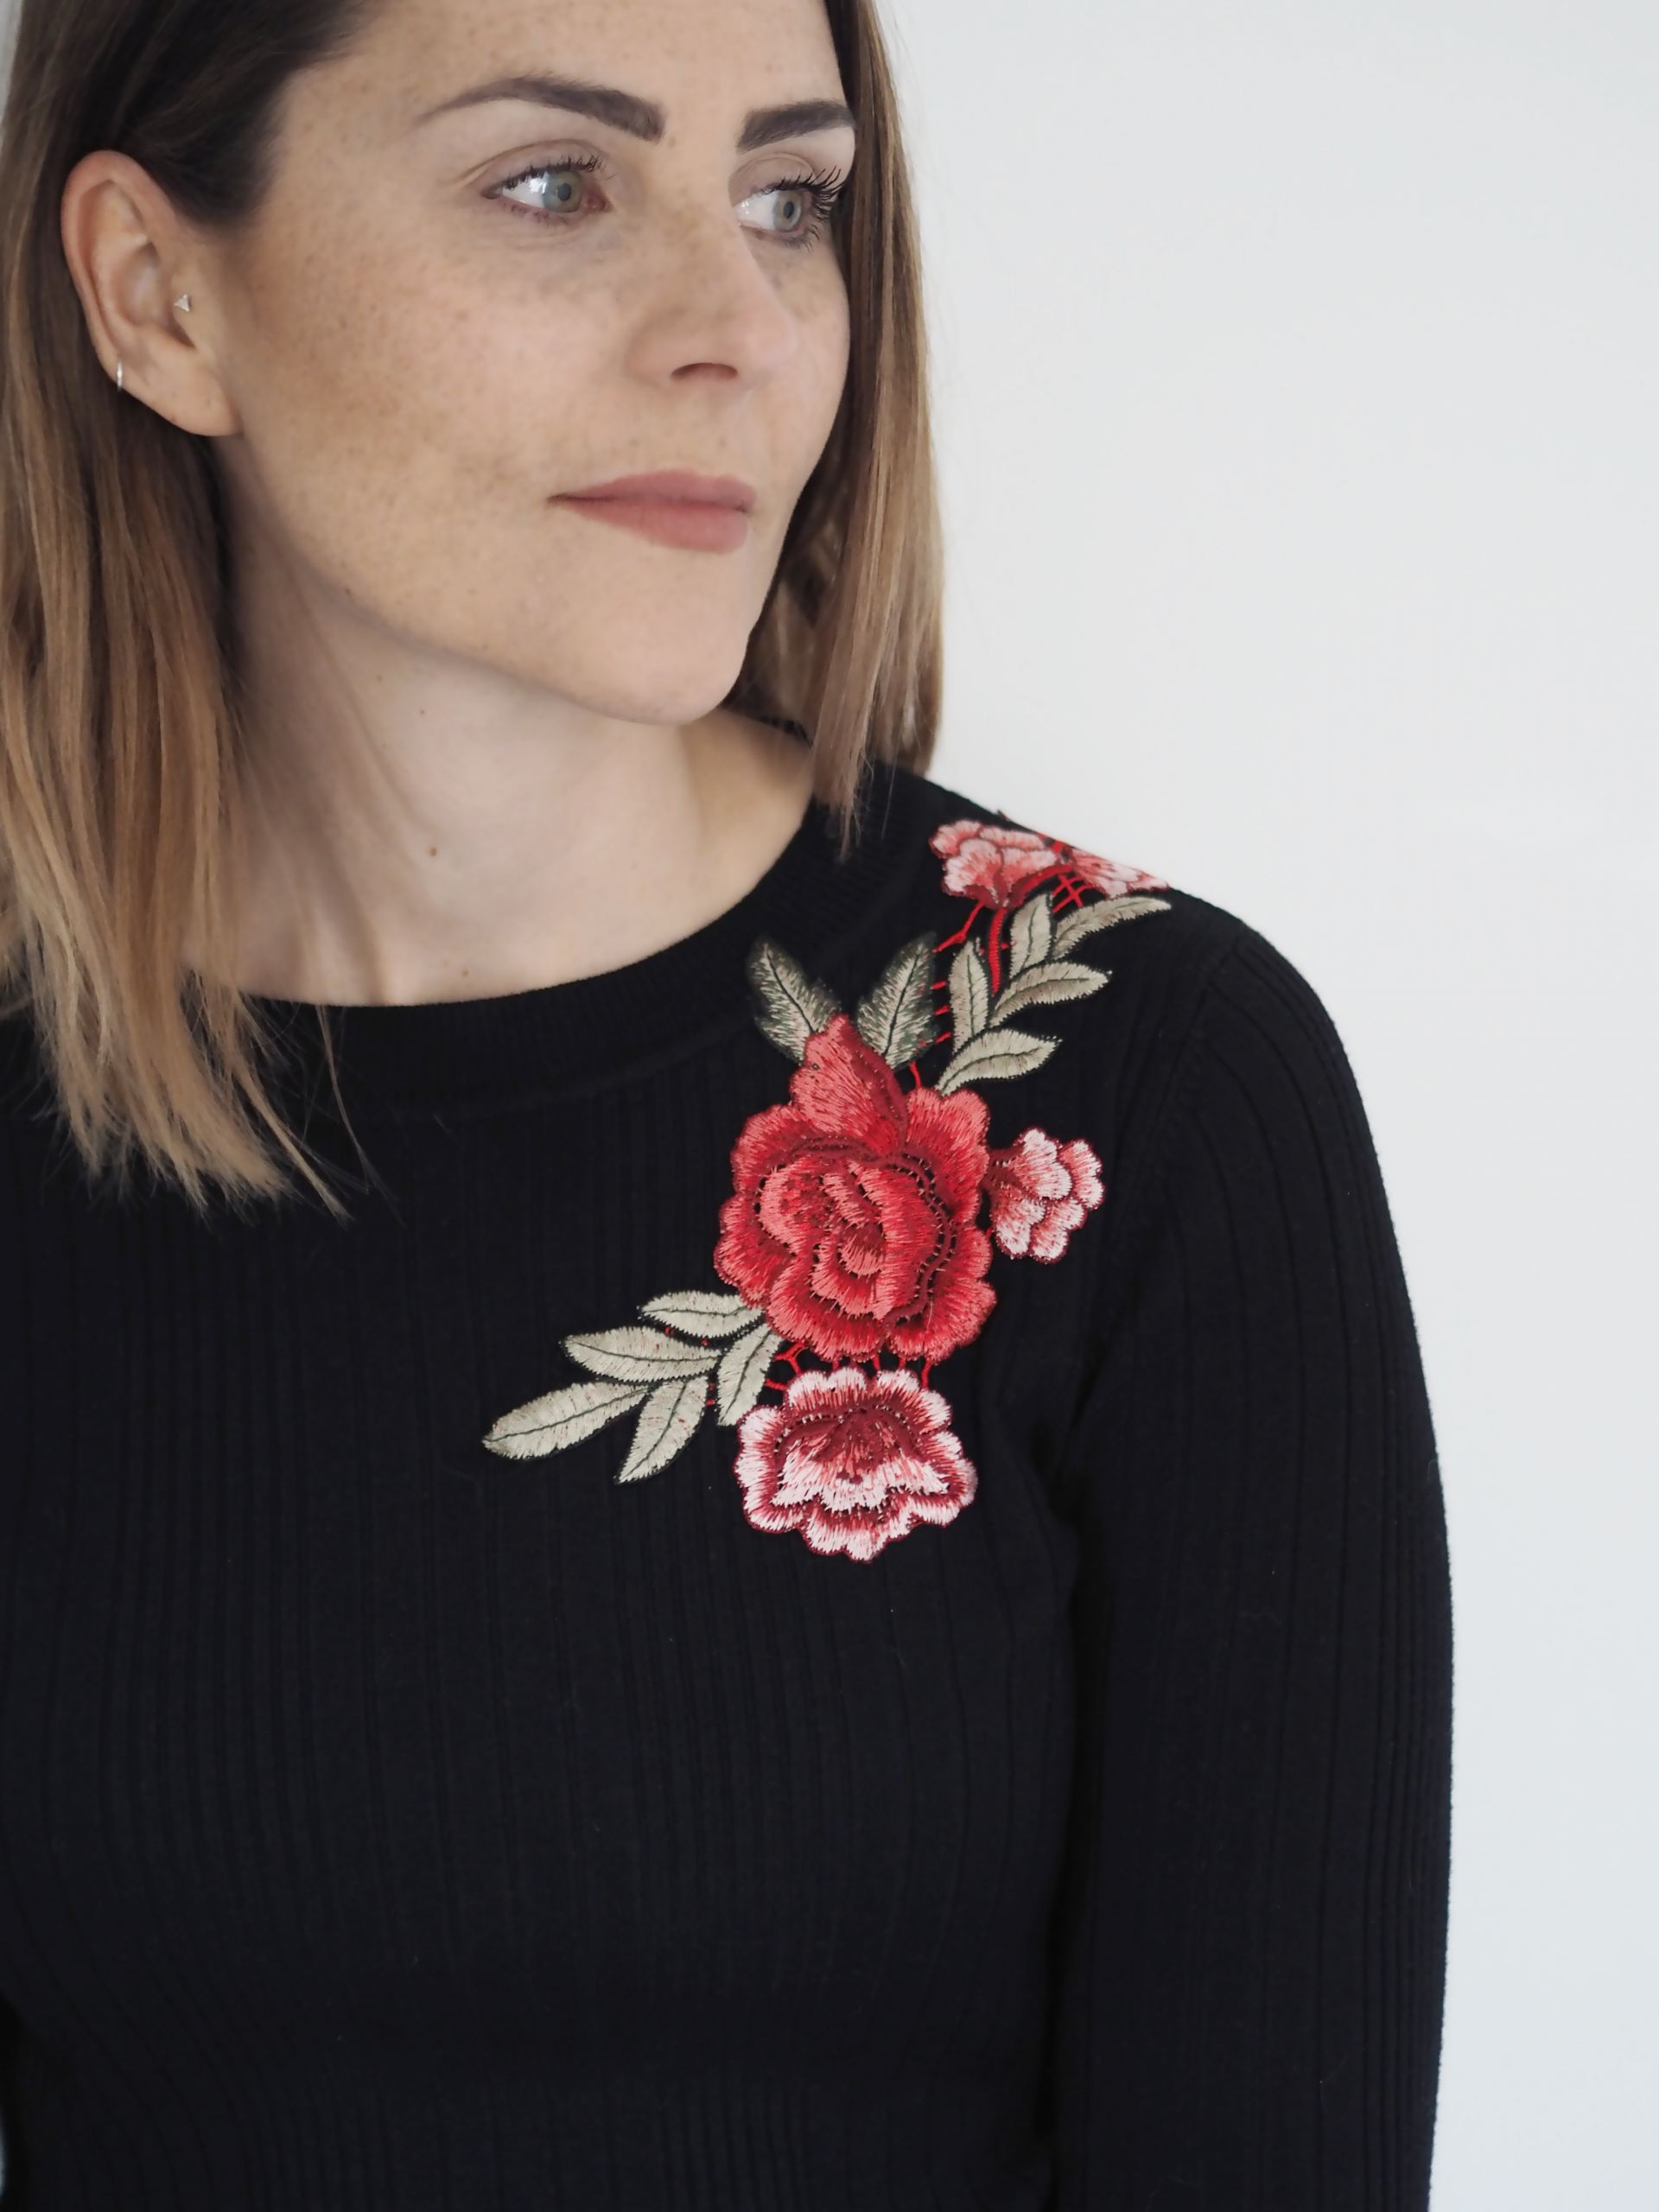 Floral Embroidered Top Diy